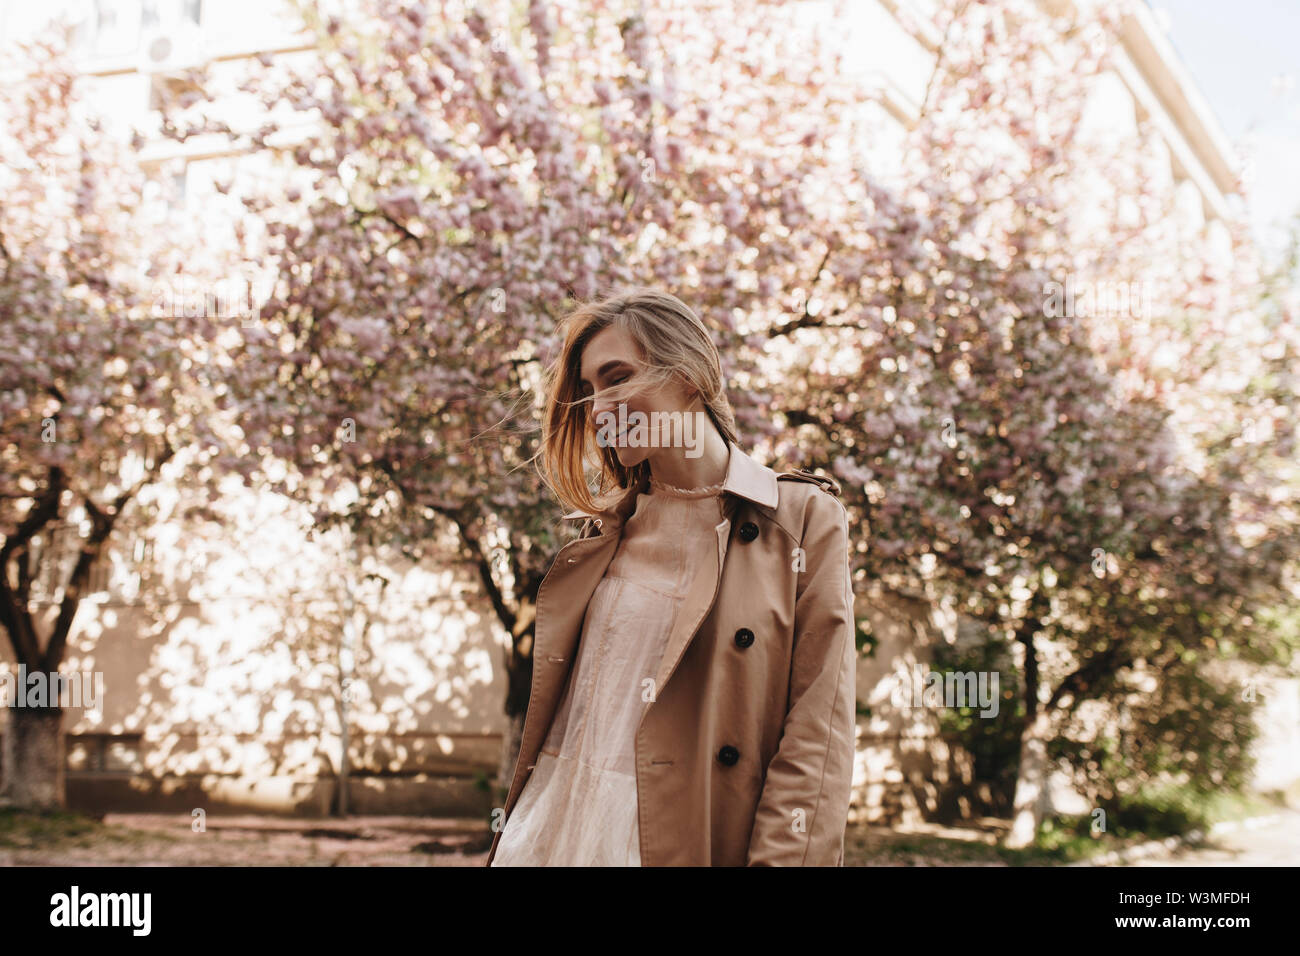 Smiling young woman by blossoming trees - Stock Image